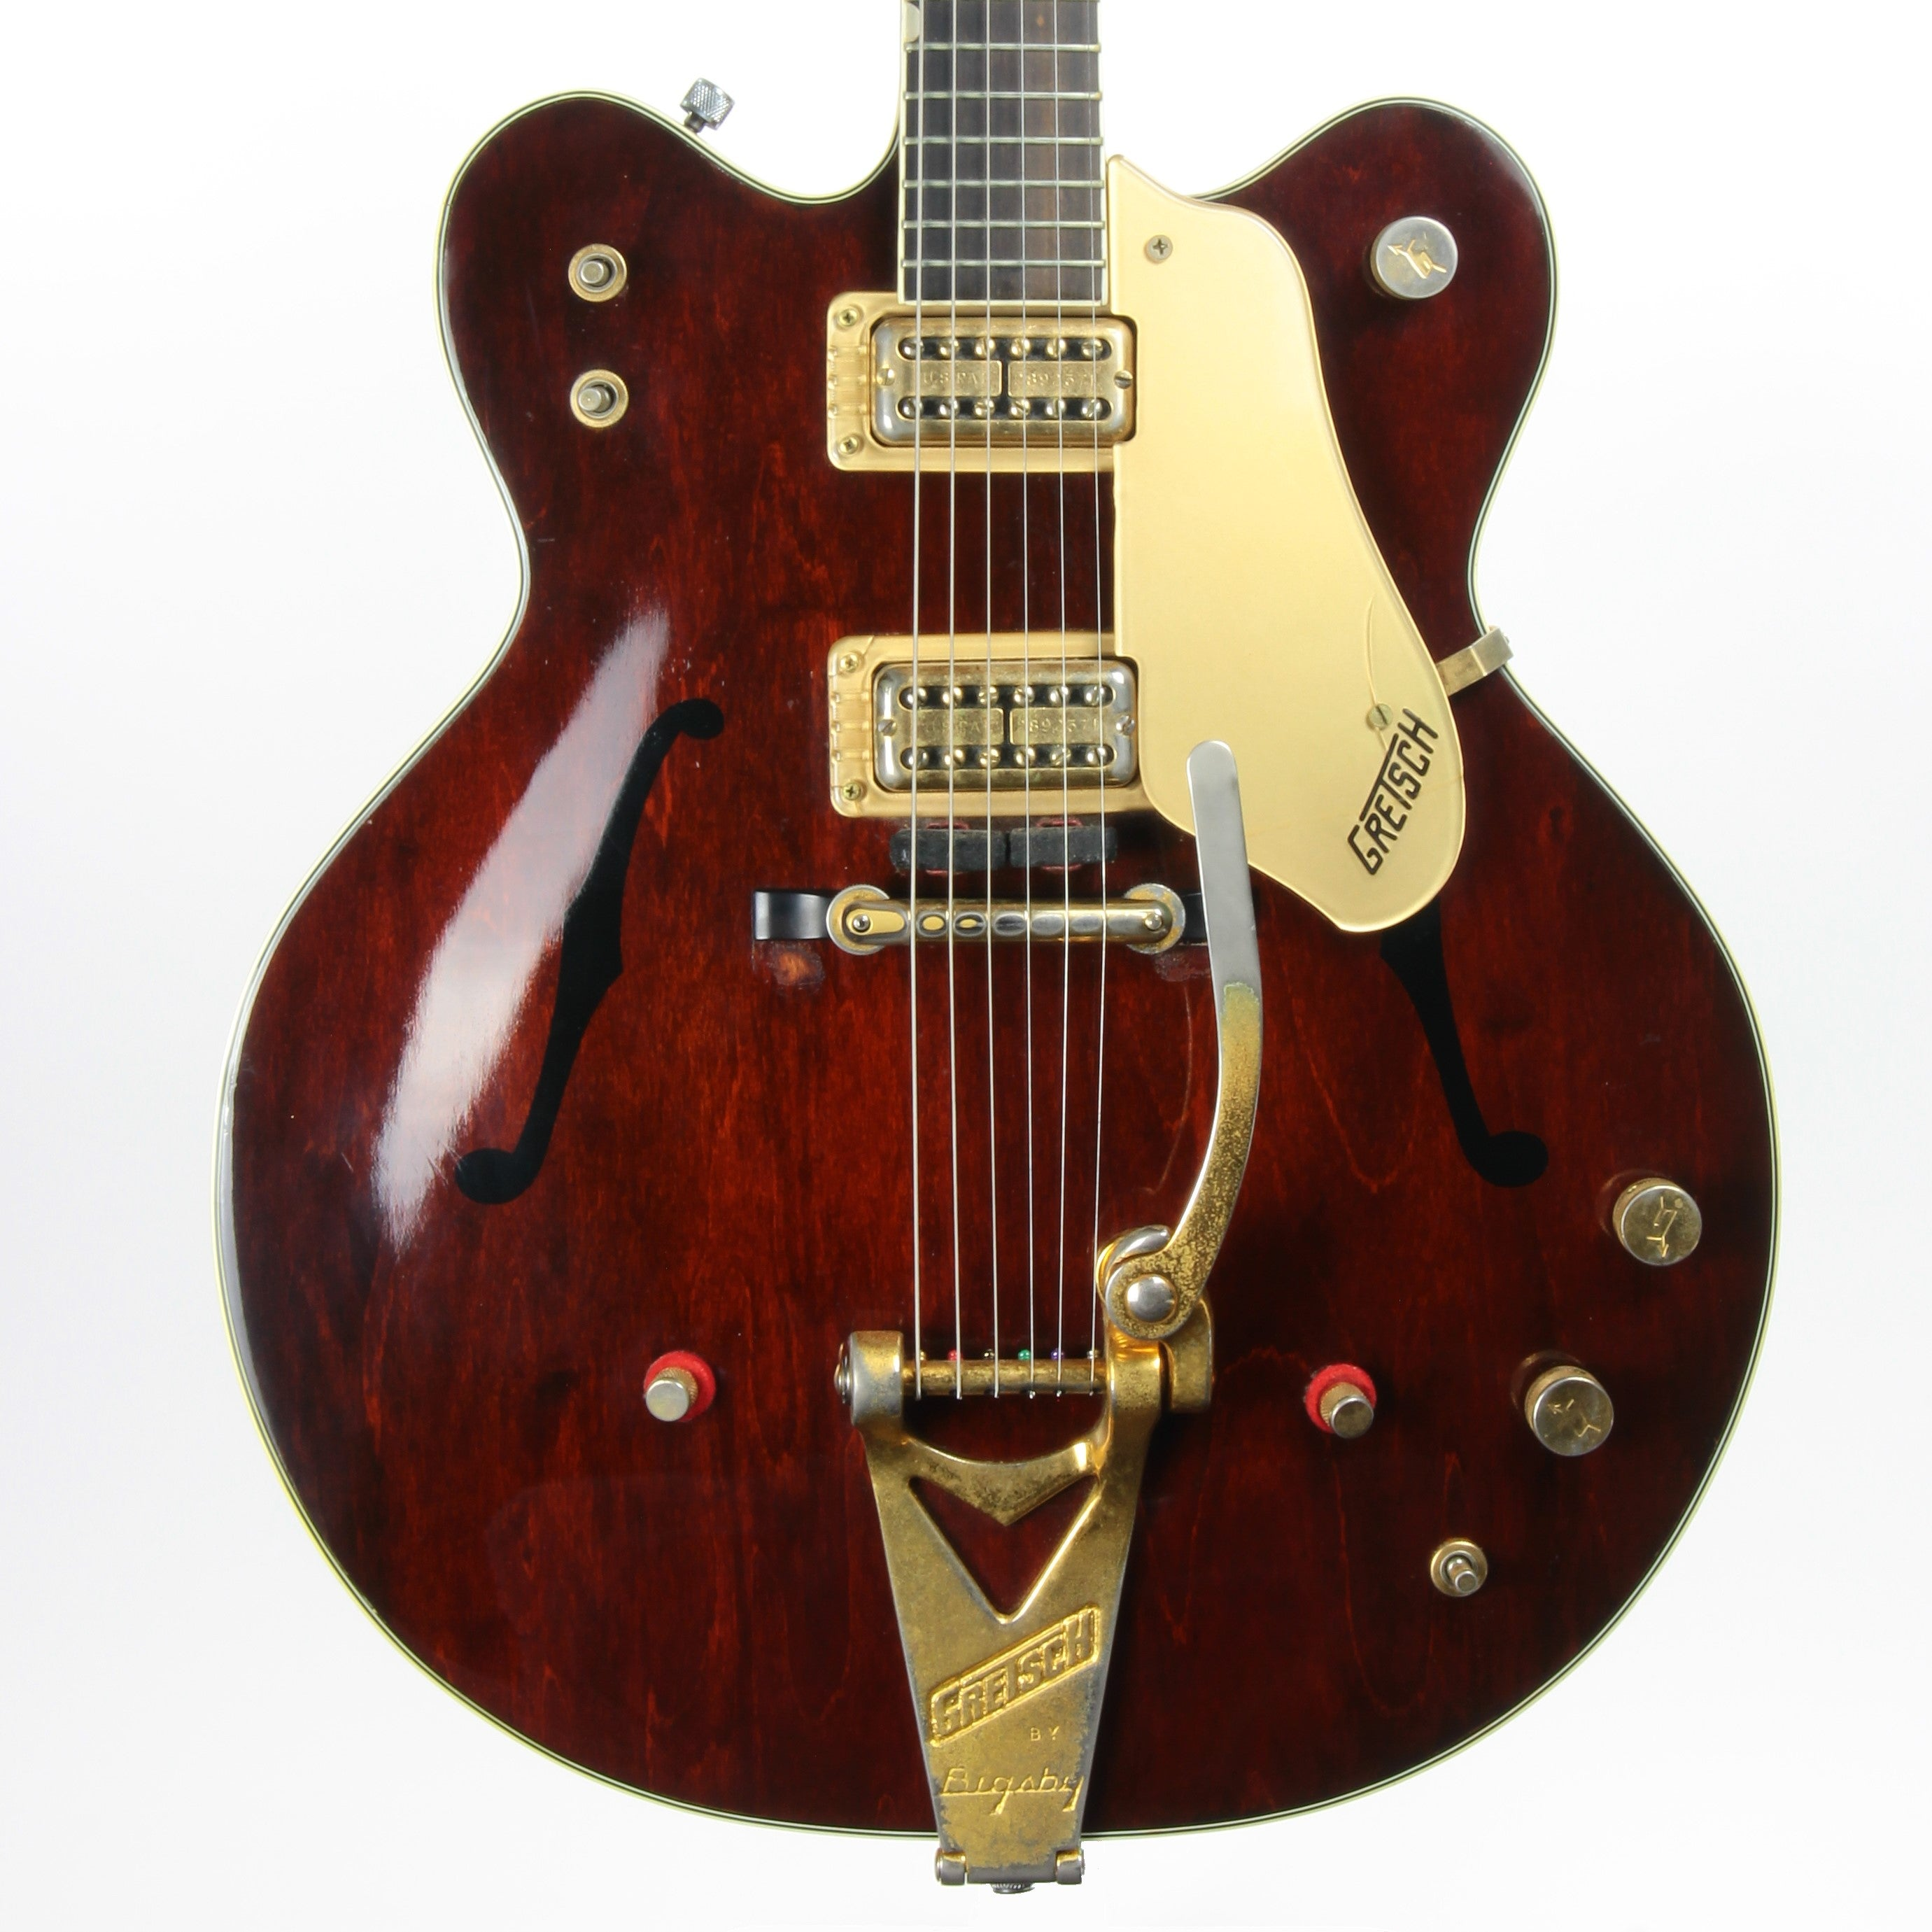 1963 Gretsch 6122 Country Gentleman Chet Atkins - Exact George Harrison Beatles Specs!